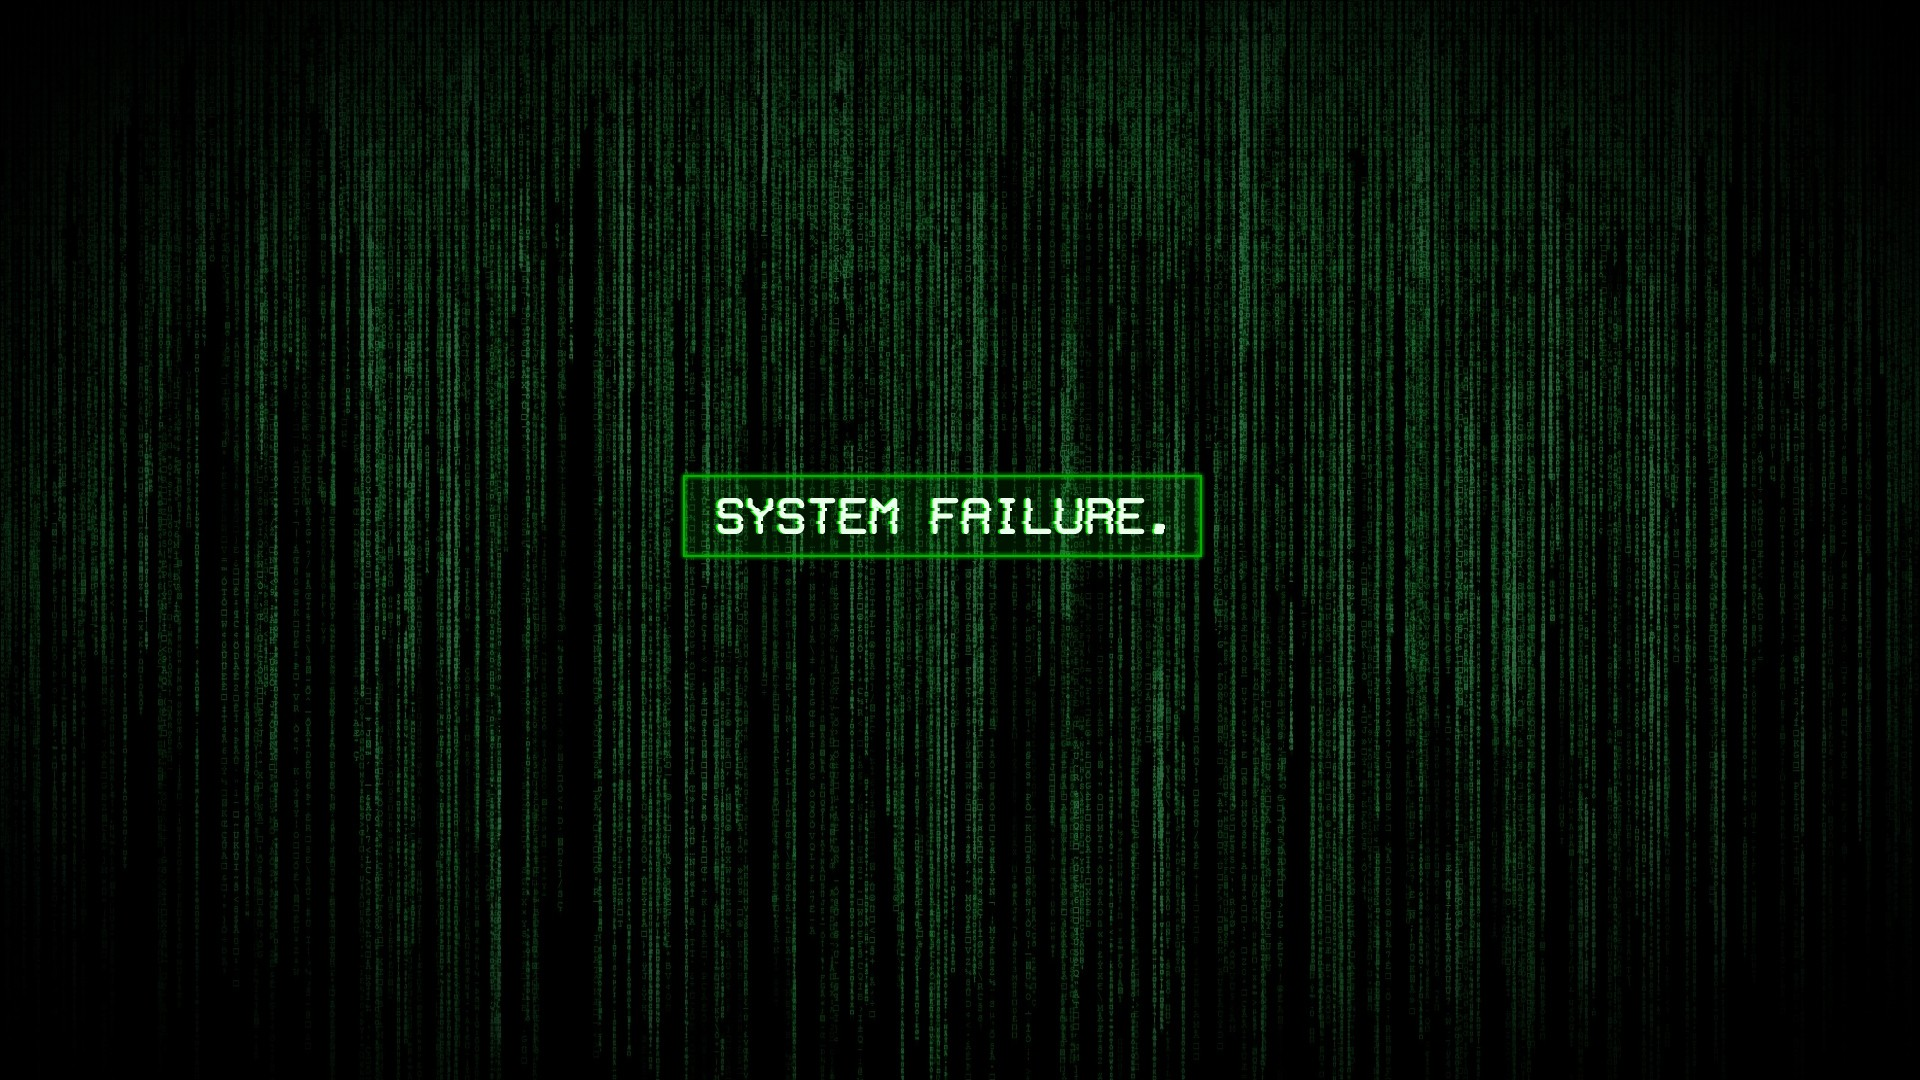 Love Failure Wallpapers For Pc : System Failure, HD computer, 4k Wallpapers, Images, Backgrounds, Photos and Pictures